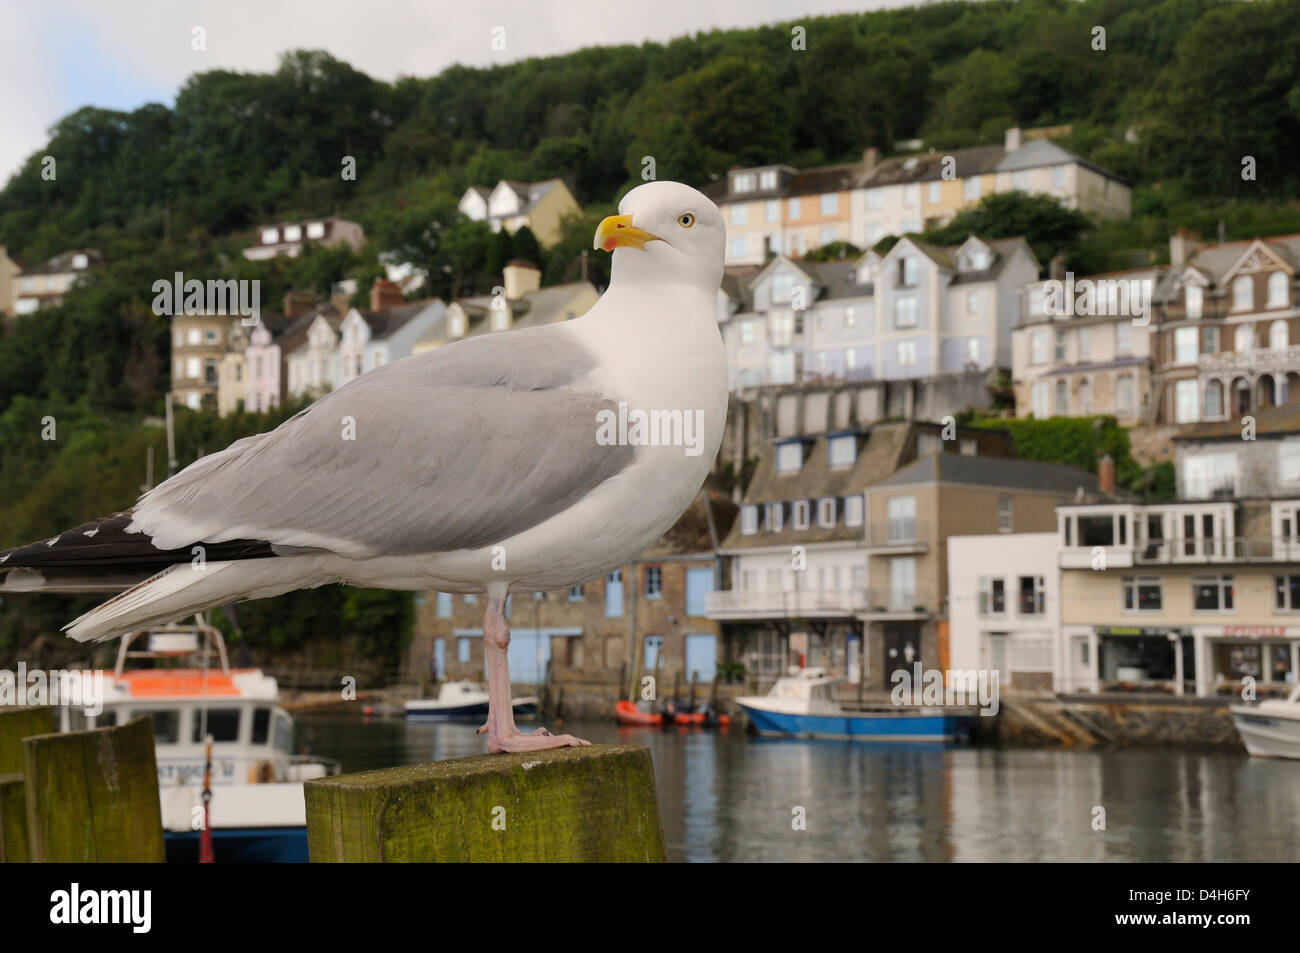 Adult herring gull standing on wooden post by Looe harbour with houses in the background, Looe, Cornwall, England, - Stock Image